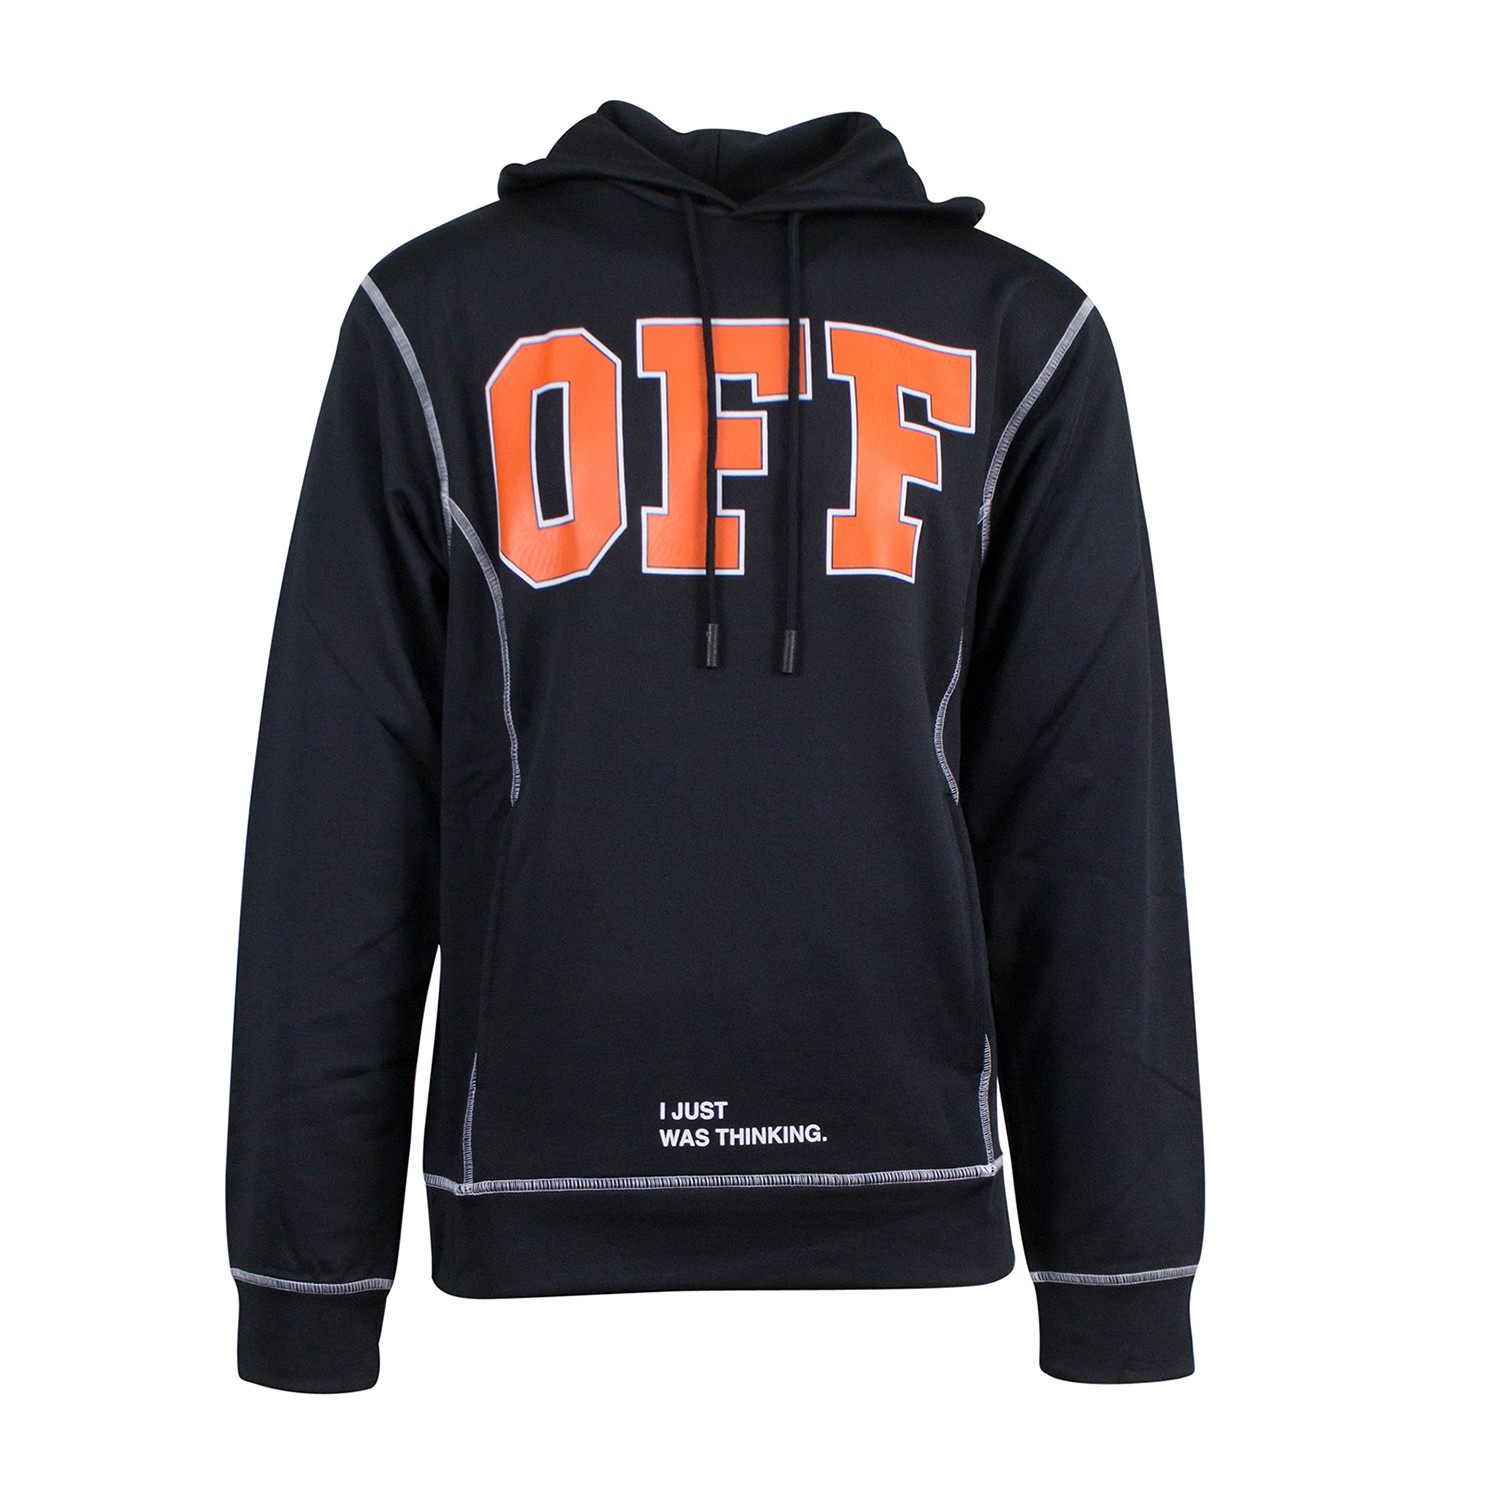 93e357a66c Off White    Off Hoodie    Black Orange (XS) - OFF White - Touch of ...